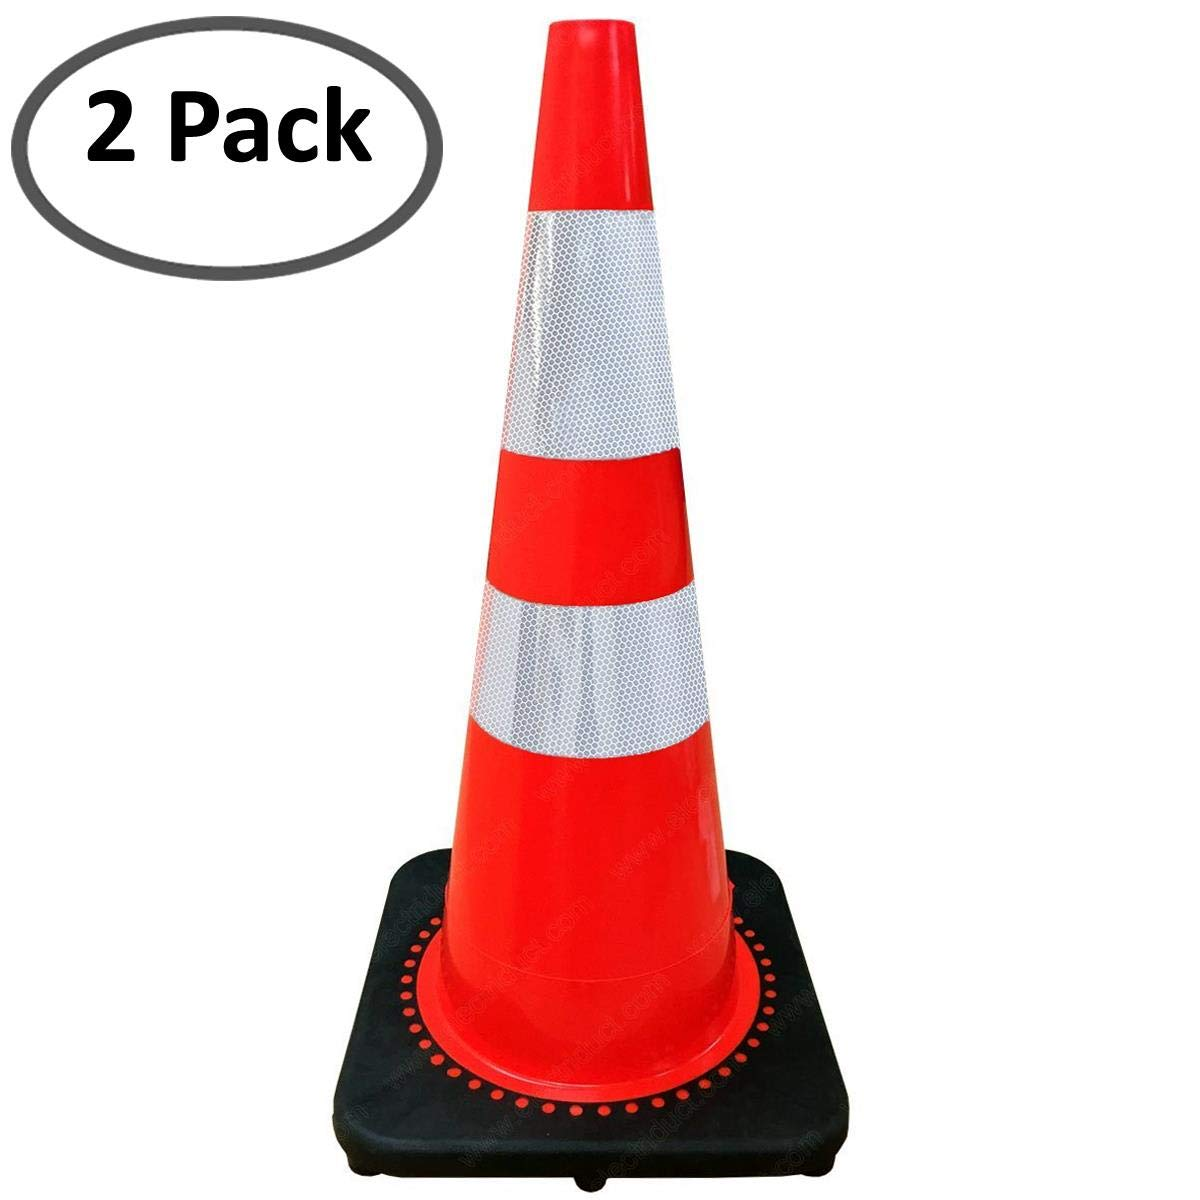 28'' Traffic Cone with Reflective Collar - Bright Orange/Black Base - 2 Pack by Electriduct